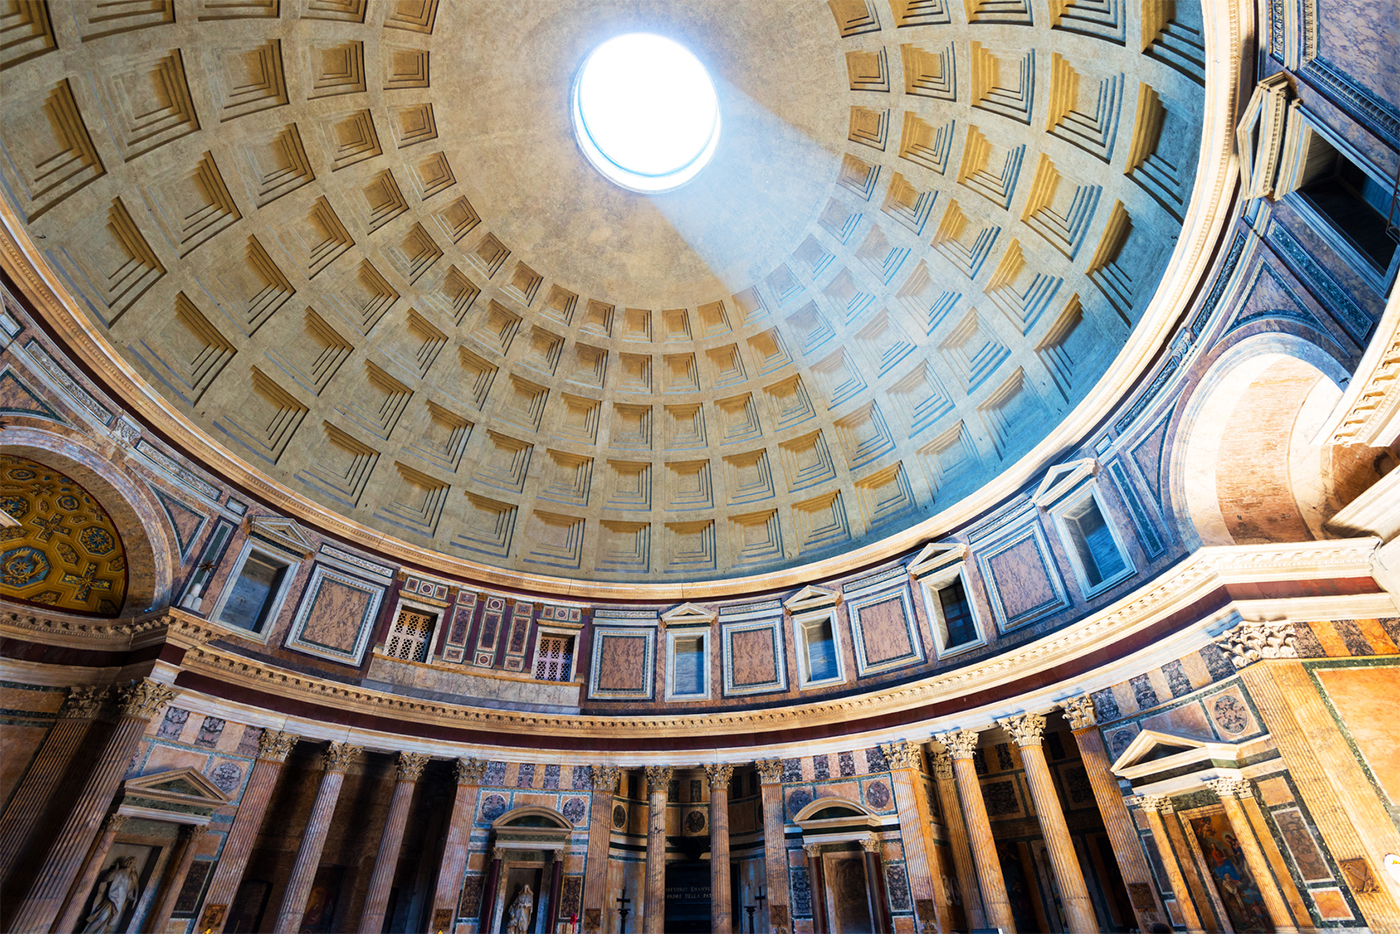 The striking perspective of the dome of the Pantheon with the light from the oculus